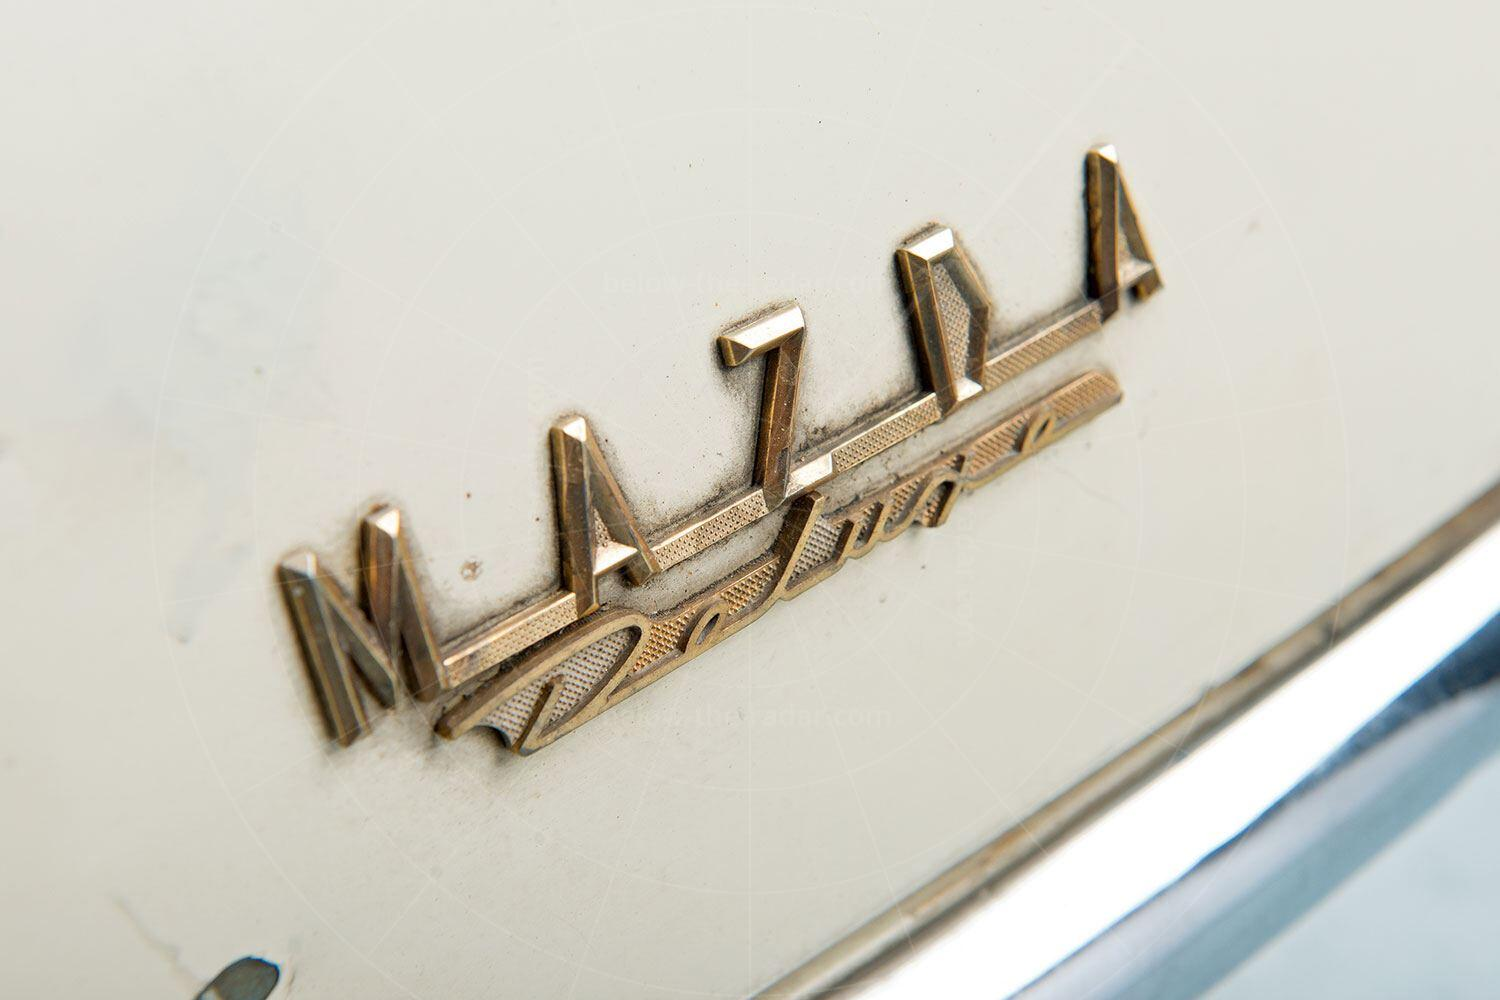 Mazda R360 badge Pic: RM Sotheby's | Mazda R360 badge